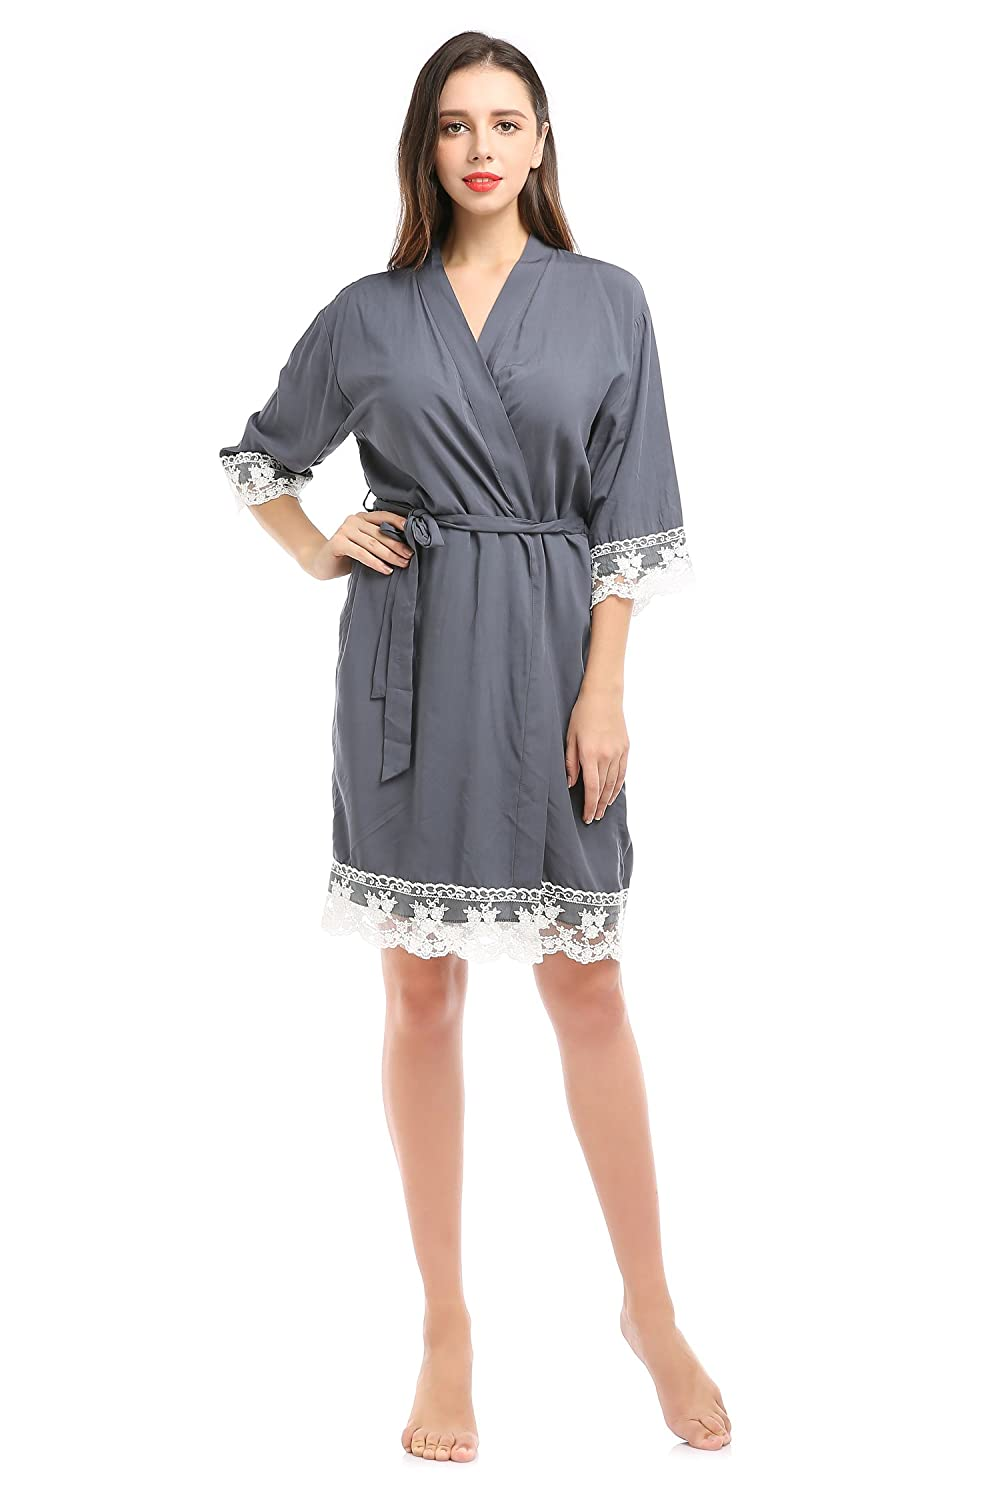 aa9f348d5f YueQiW Women s Soft Rayon Cotton Robe for Bride and Bridesmaids with Floral  Lace Nightwear at Amazon Women s Clothing store